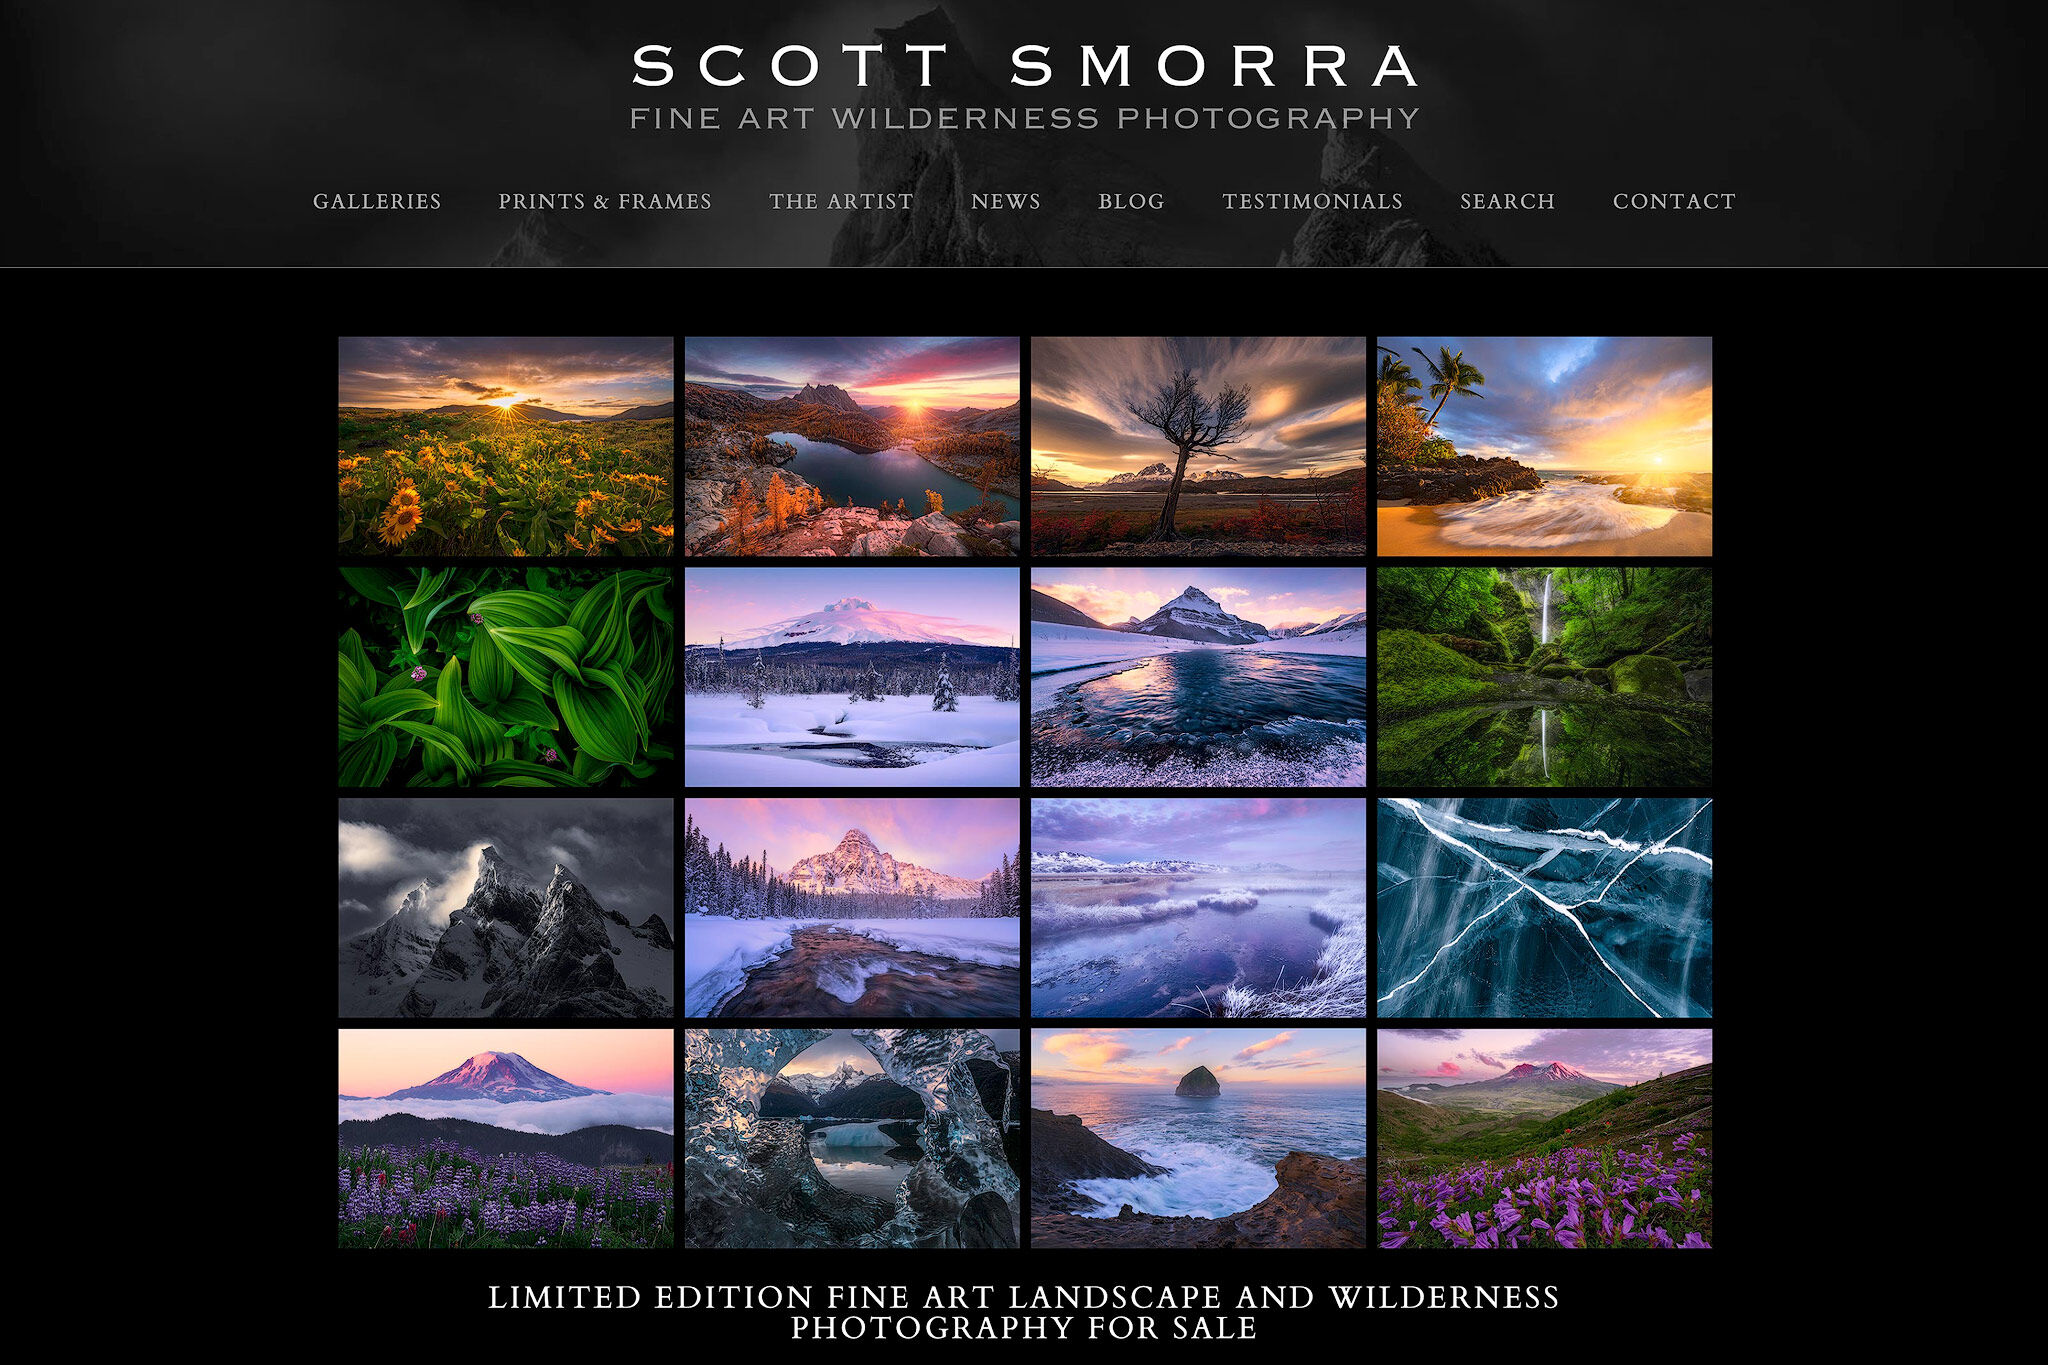 Scott Smorra, Photography, Website, Homepage, Limited Edition, Fine Art